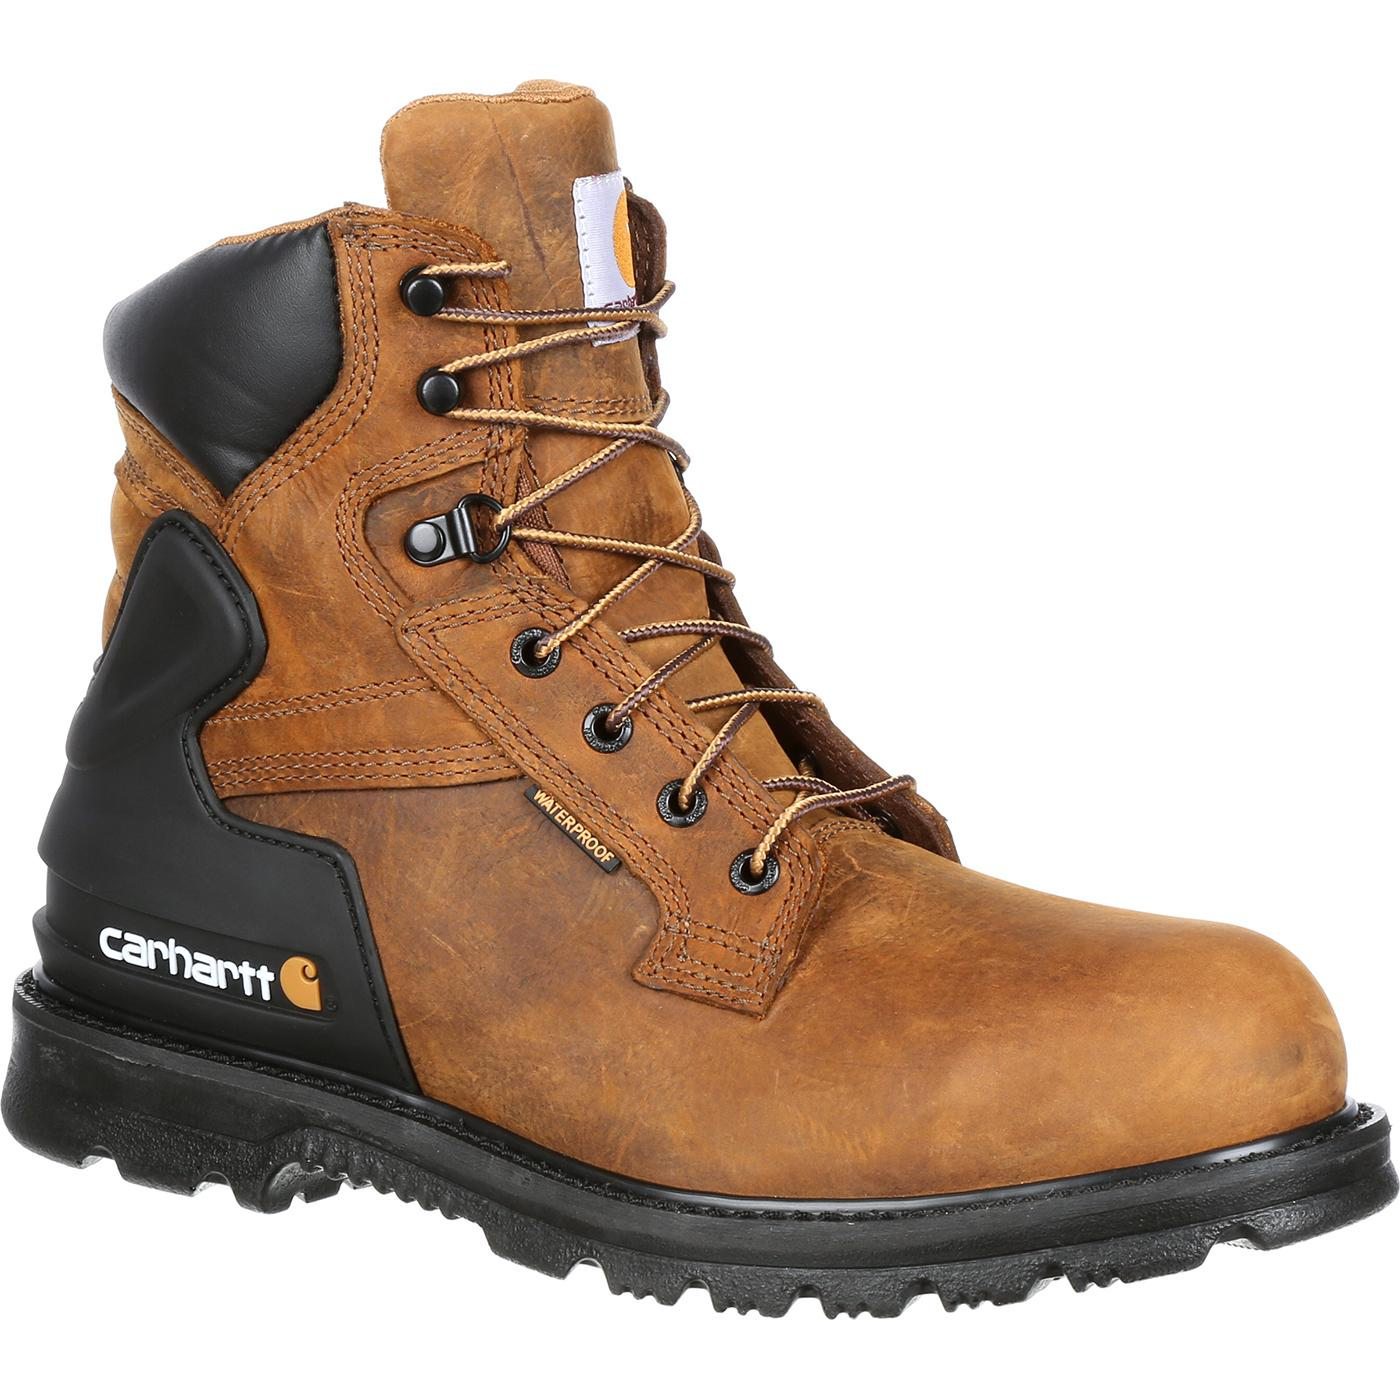 Steel Toe Waterproof Work Shoes by Carhartt #CMW6220